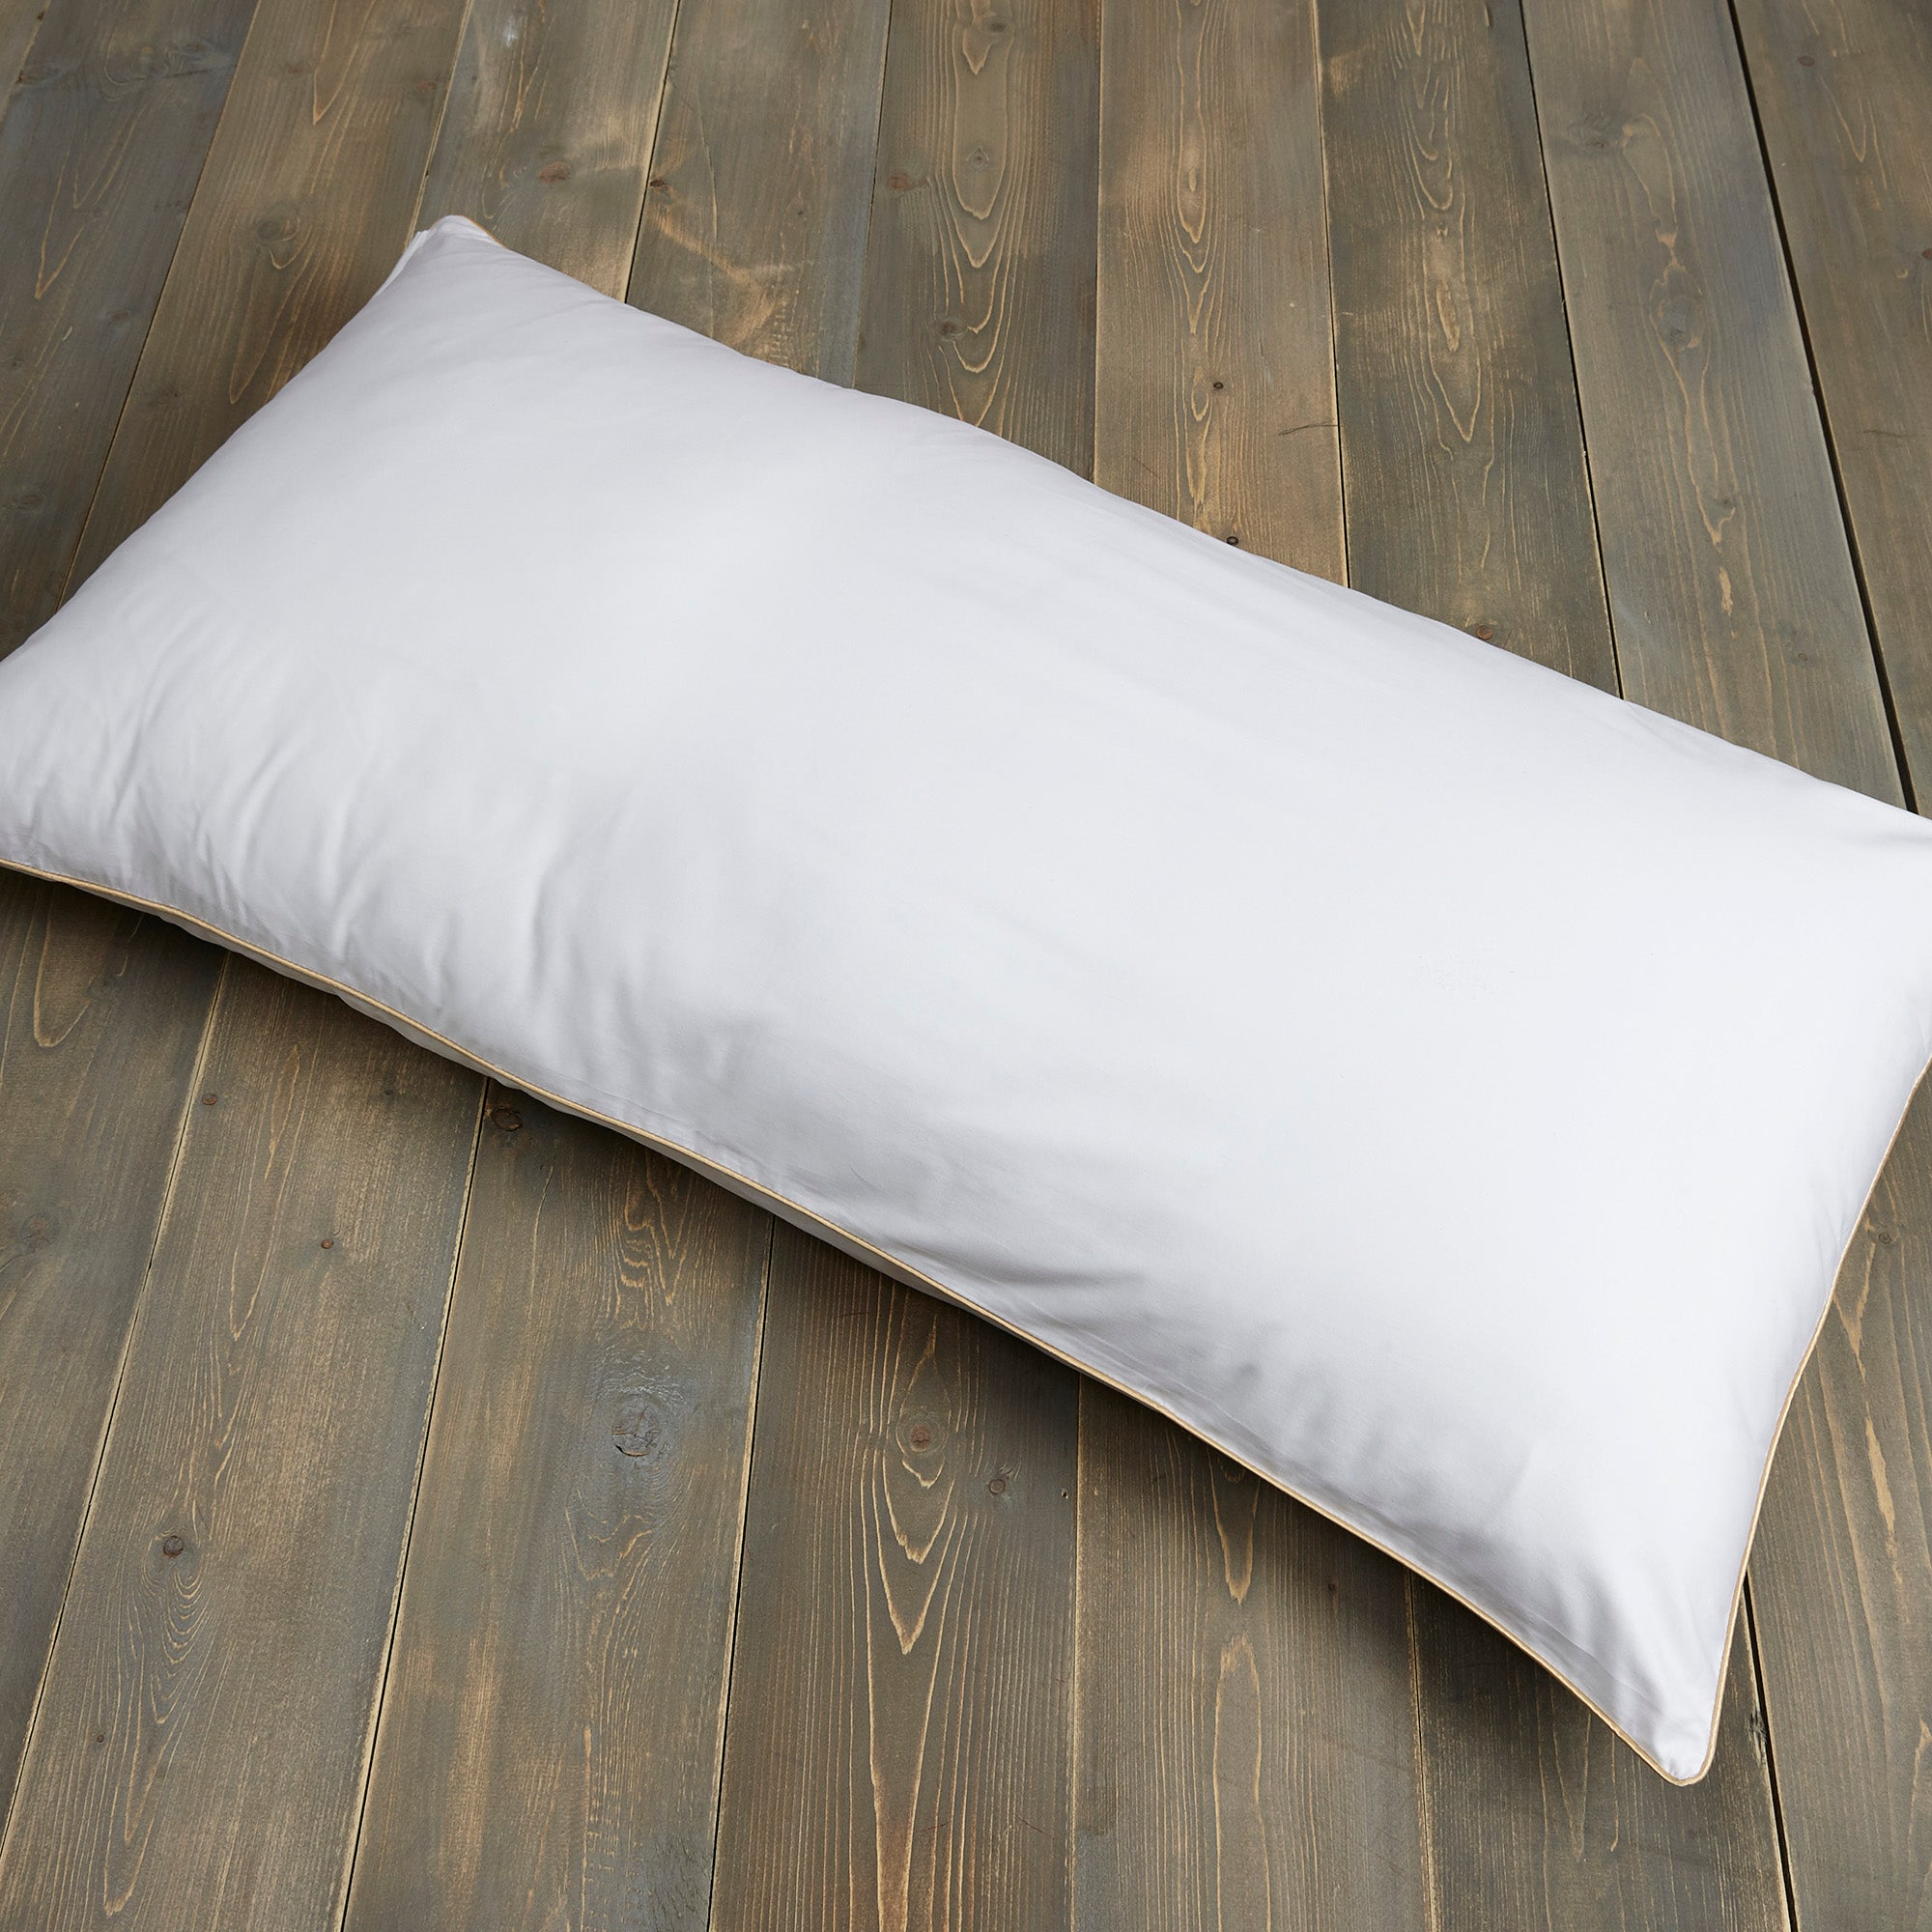 Image of Dorma Cotton Sateen King Size Pillow Protector White